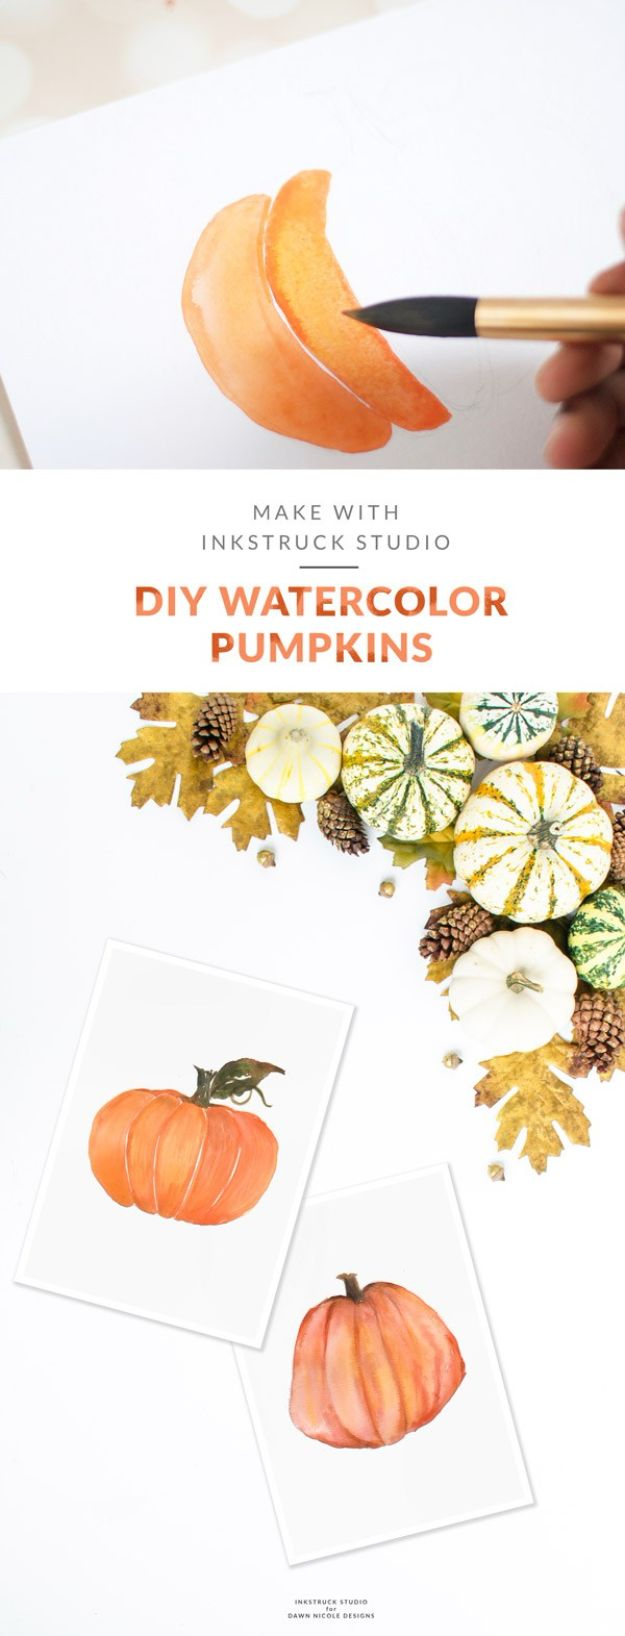 Watercolor Tutorials and Techniques - DIY Watercolor Pumpkin Tutorial - How To Paint With Watercolor - Make Watercolor Flowers, Ocean, Sky, Abstract People, Landscapes, Buildings, Animals, Portraits, Sunset - Step by Step Art Lessons for Beginners - Easy Video Tutorials and How To for Watercolors and Paint Washes #art #watercolor #diyart #artlessons #painting http://diyjoy.com/watercolor-tutorials